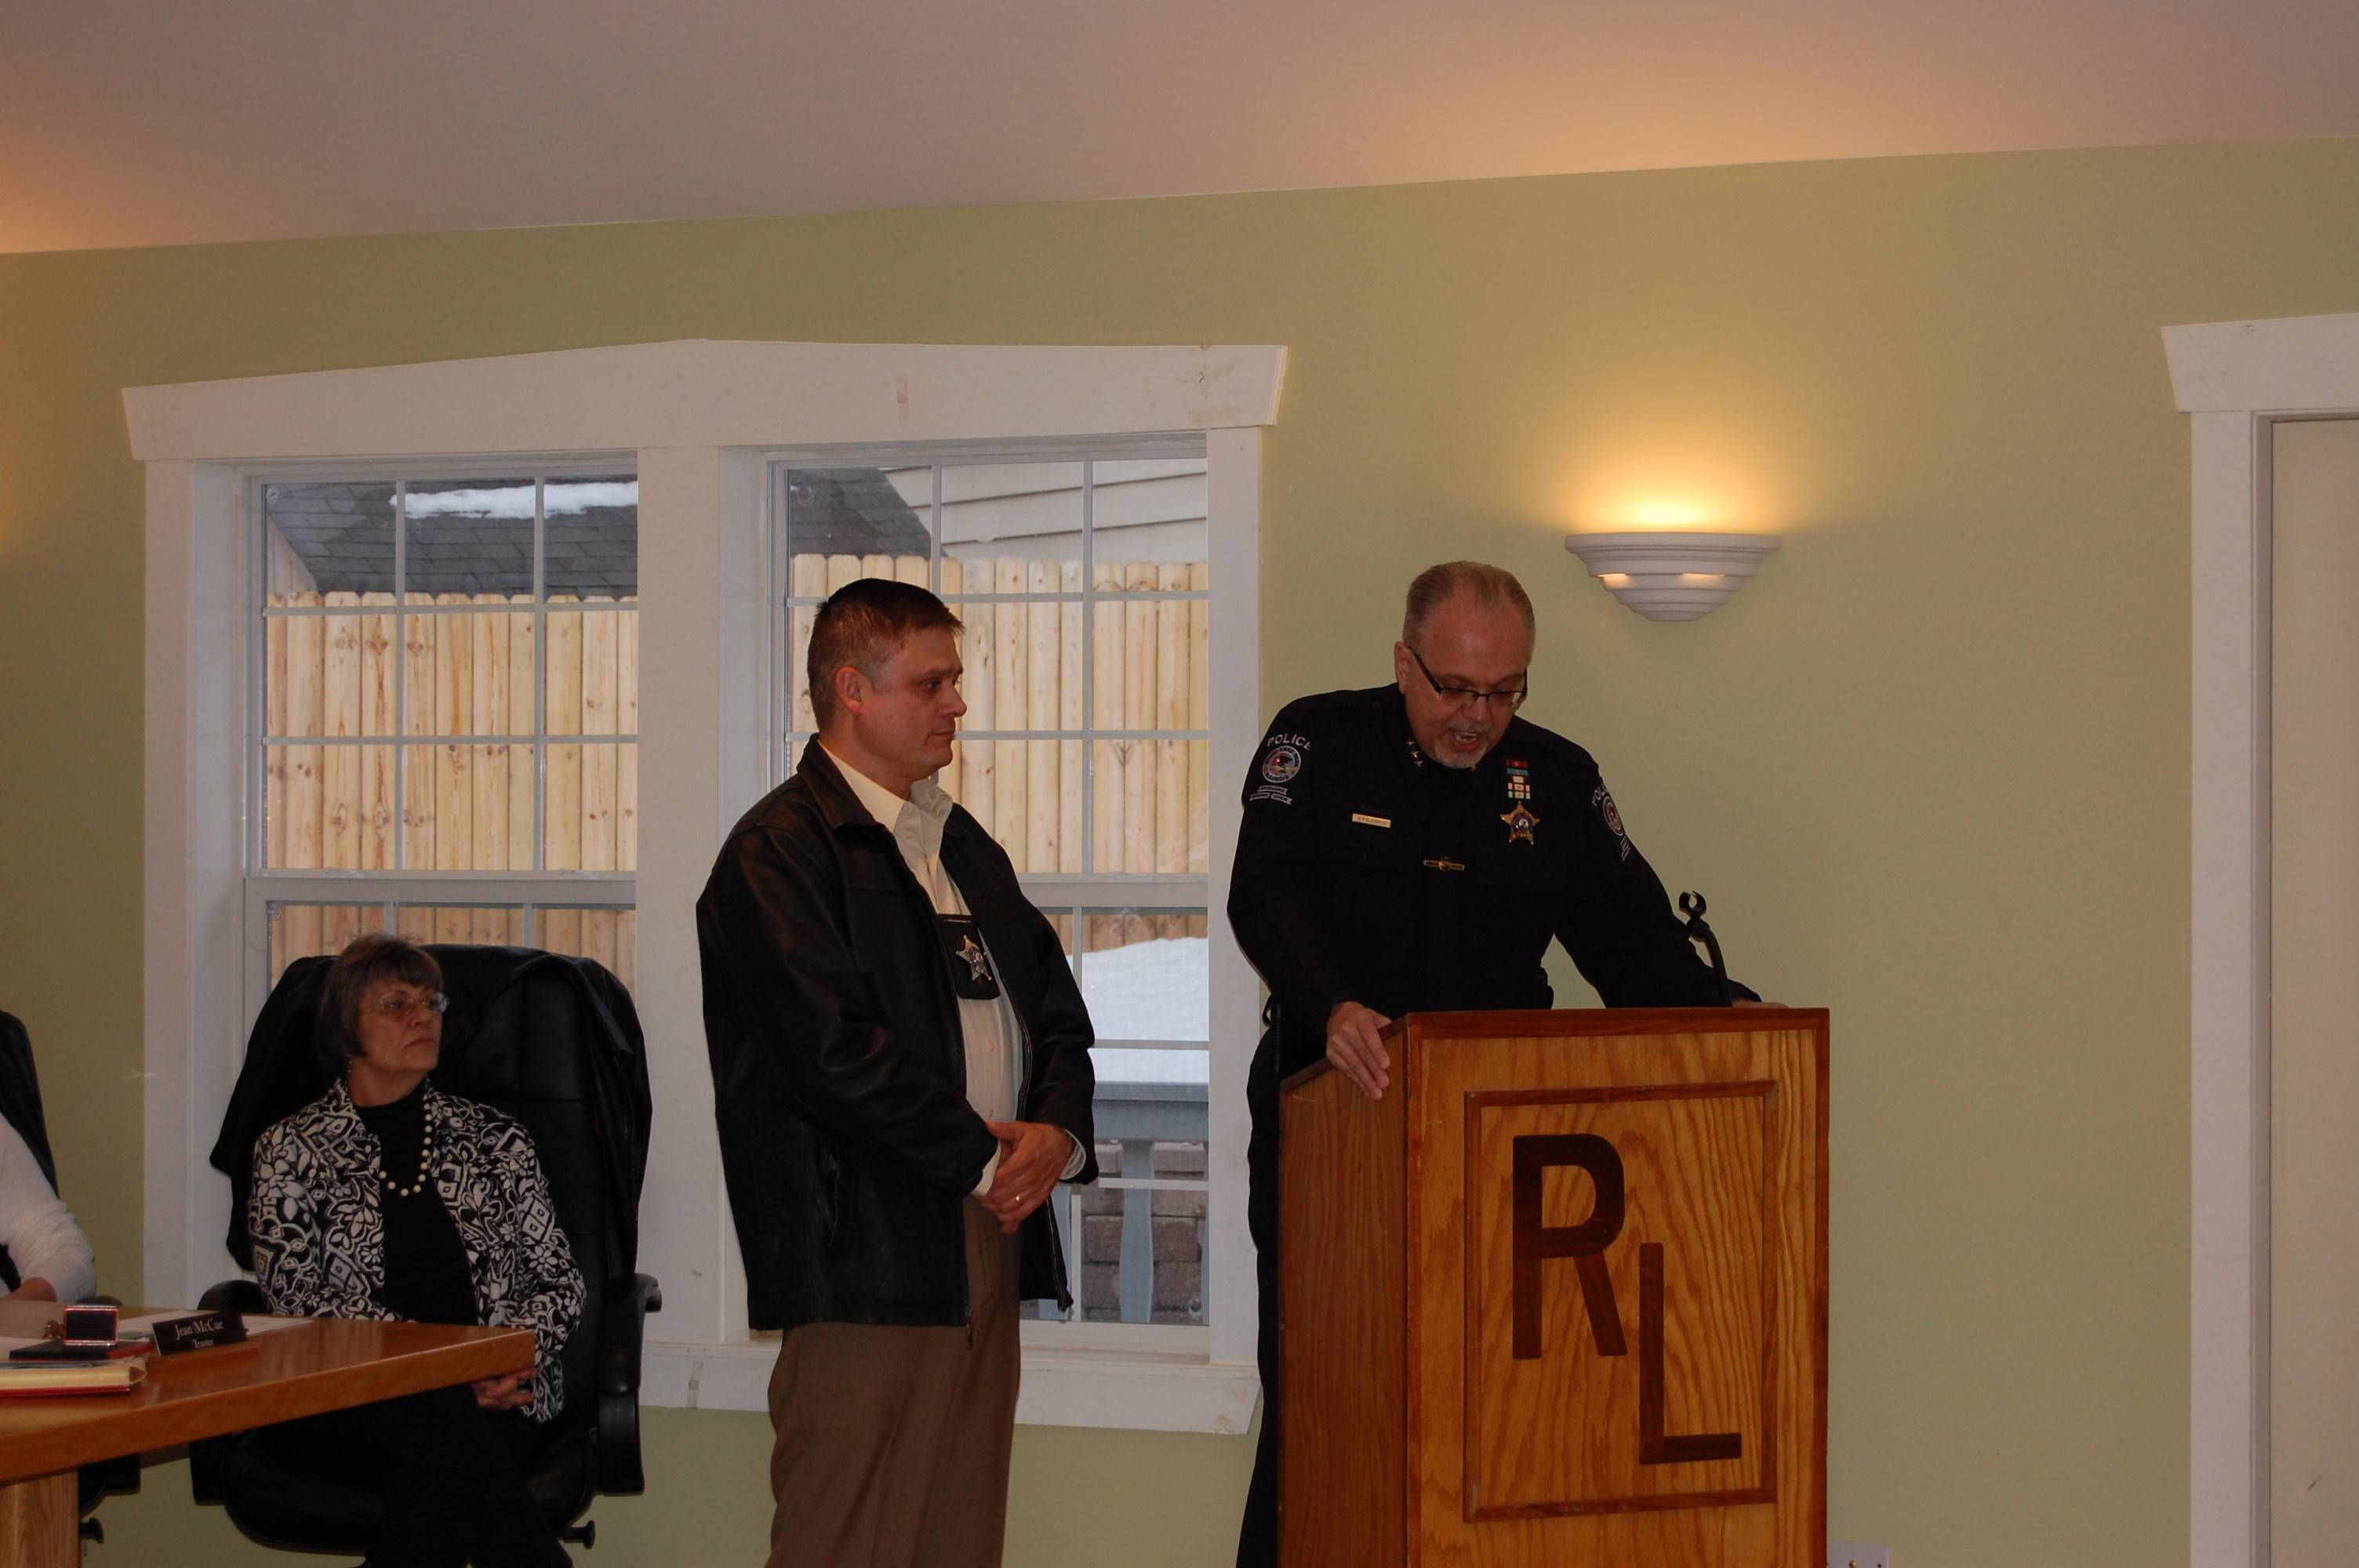 Round Lake Park police officer Waymon Vela was presented with the Chief's Achievement Award.